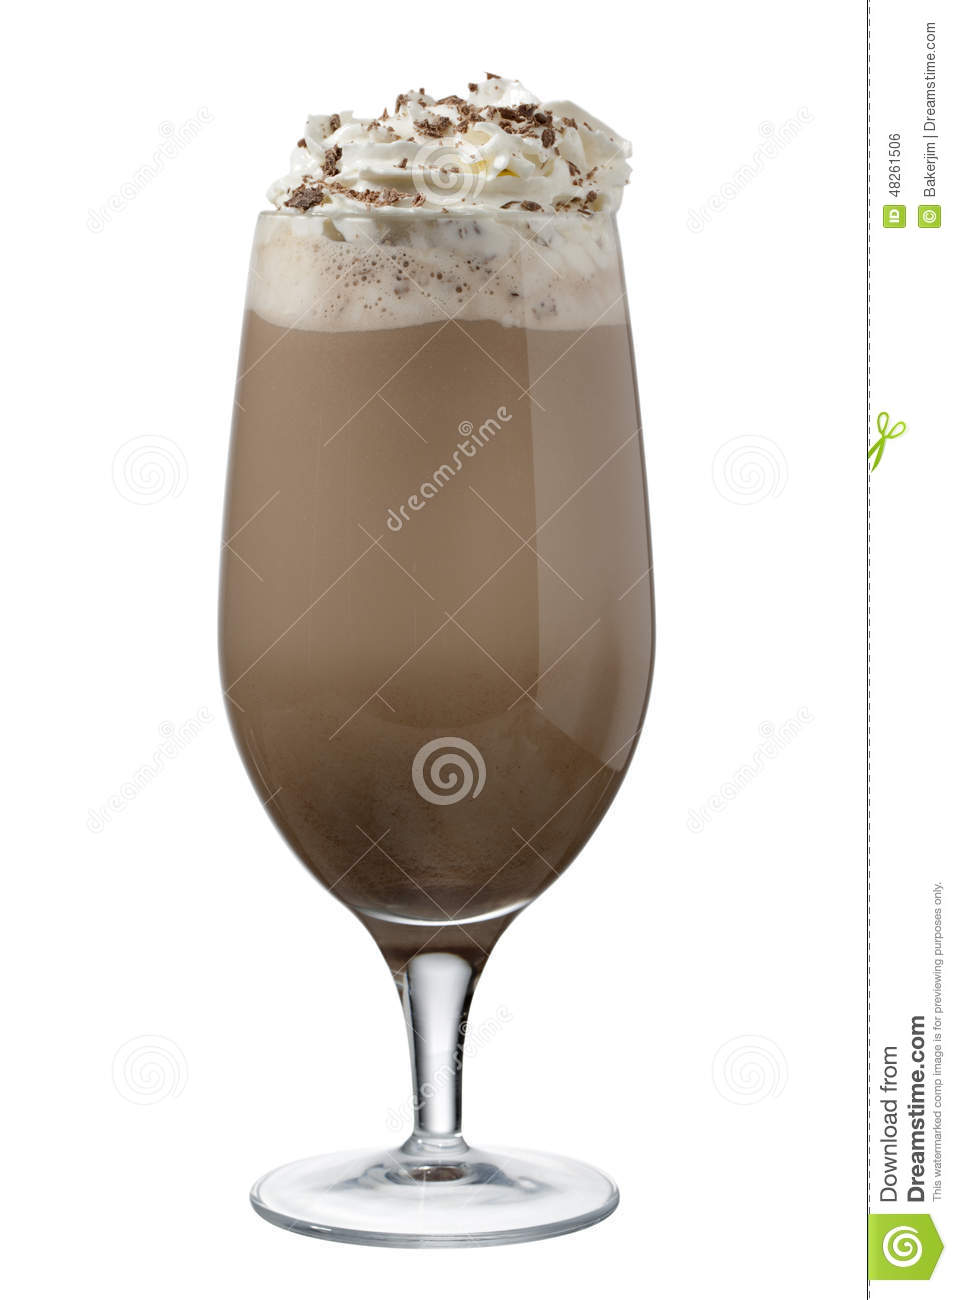 Glass of chocolate shake with whipped cream